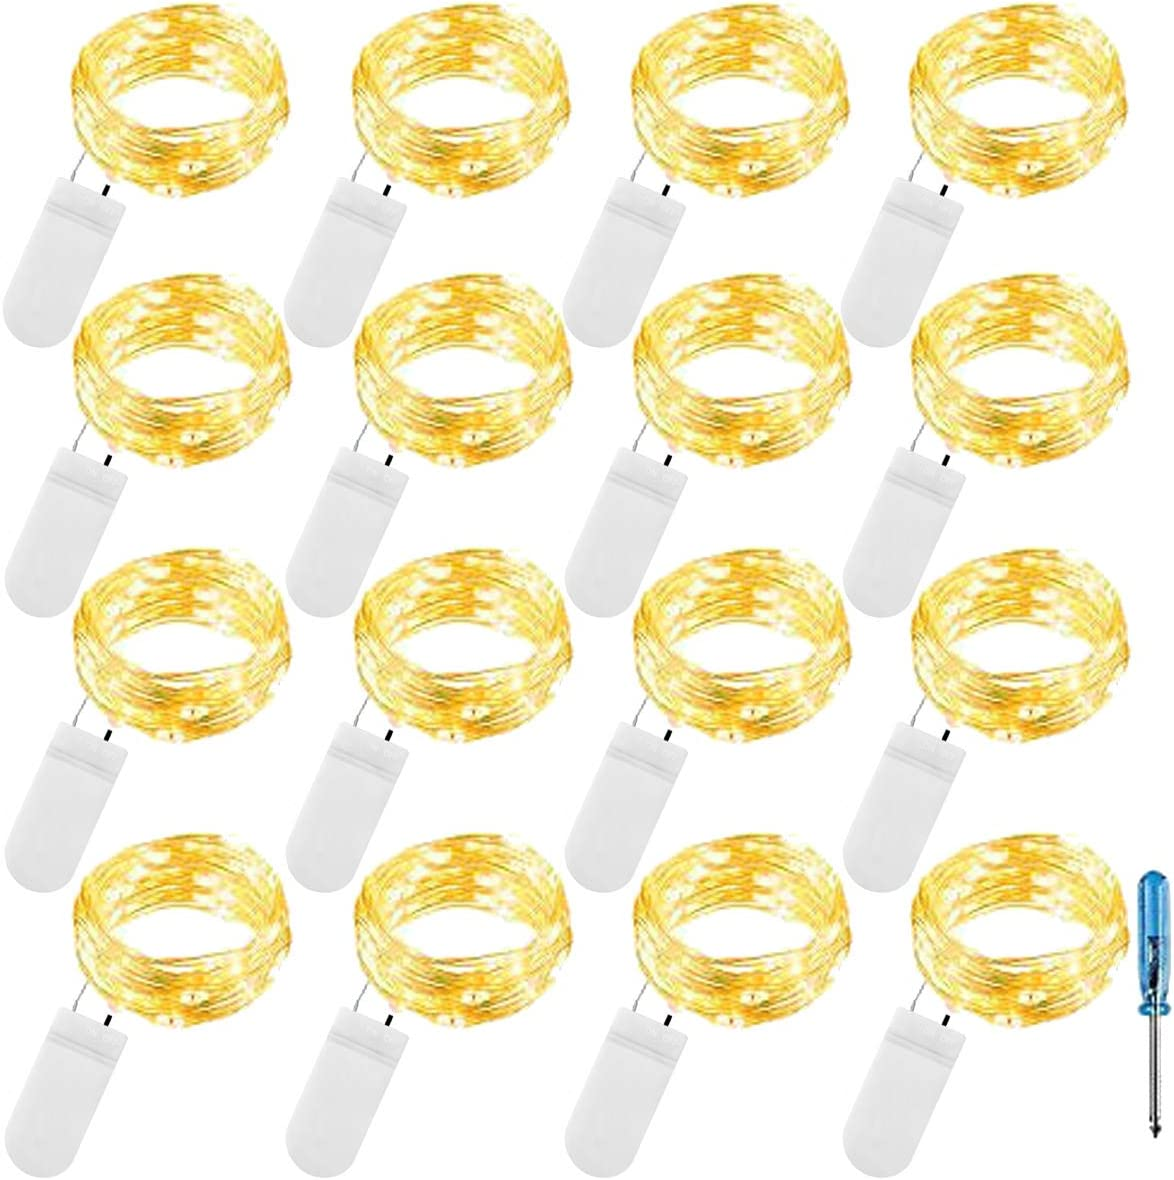 LXS Quality inspection 16 New Free Shipping PCS 10ft 30 Micro LEDs On Bright Super Lights String